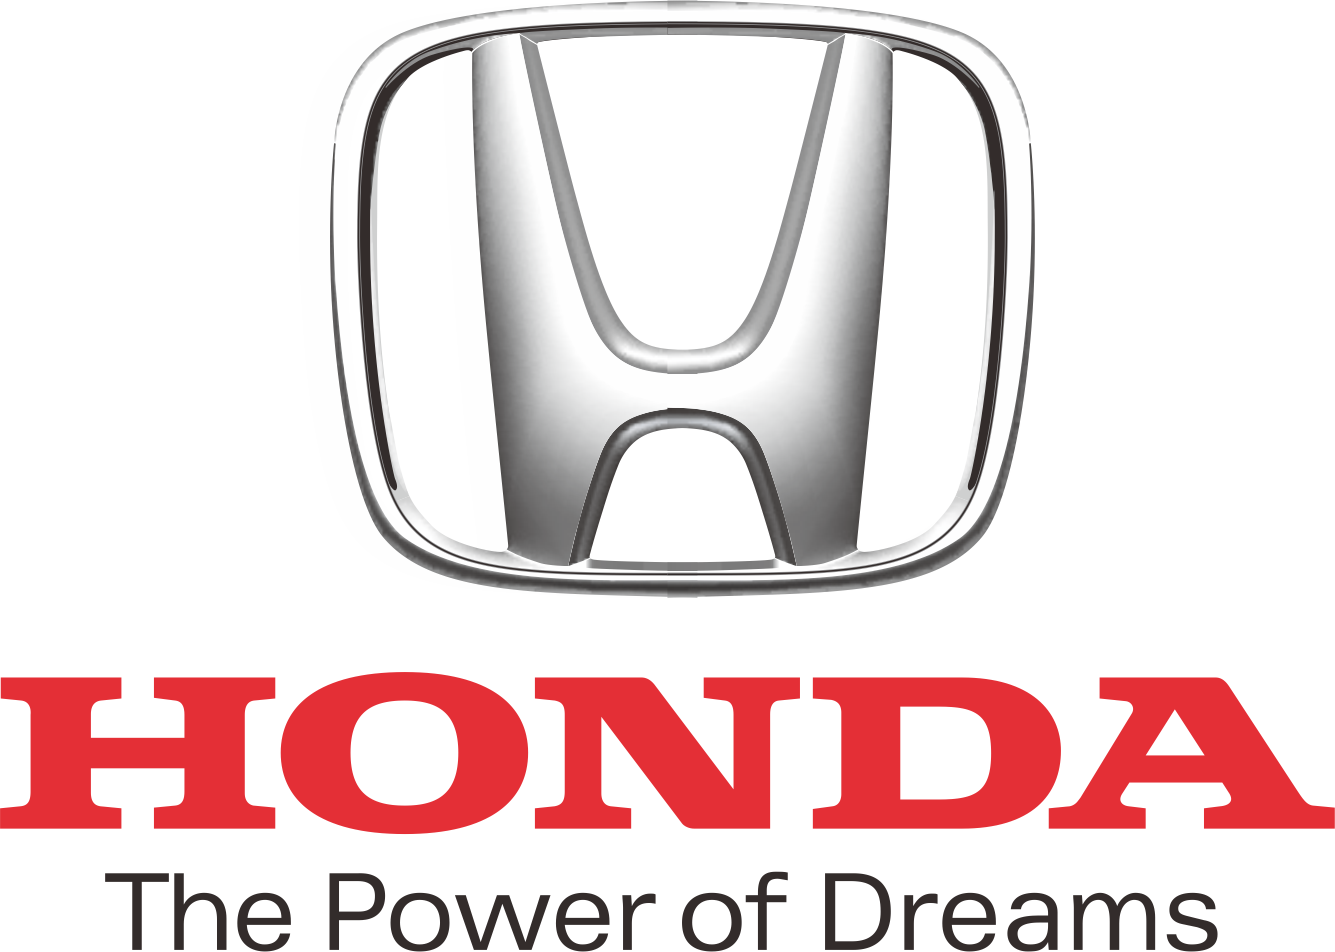 motorcycles and cars honda japan png